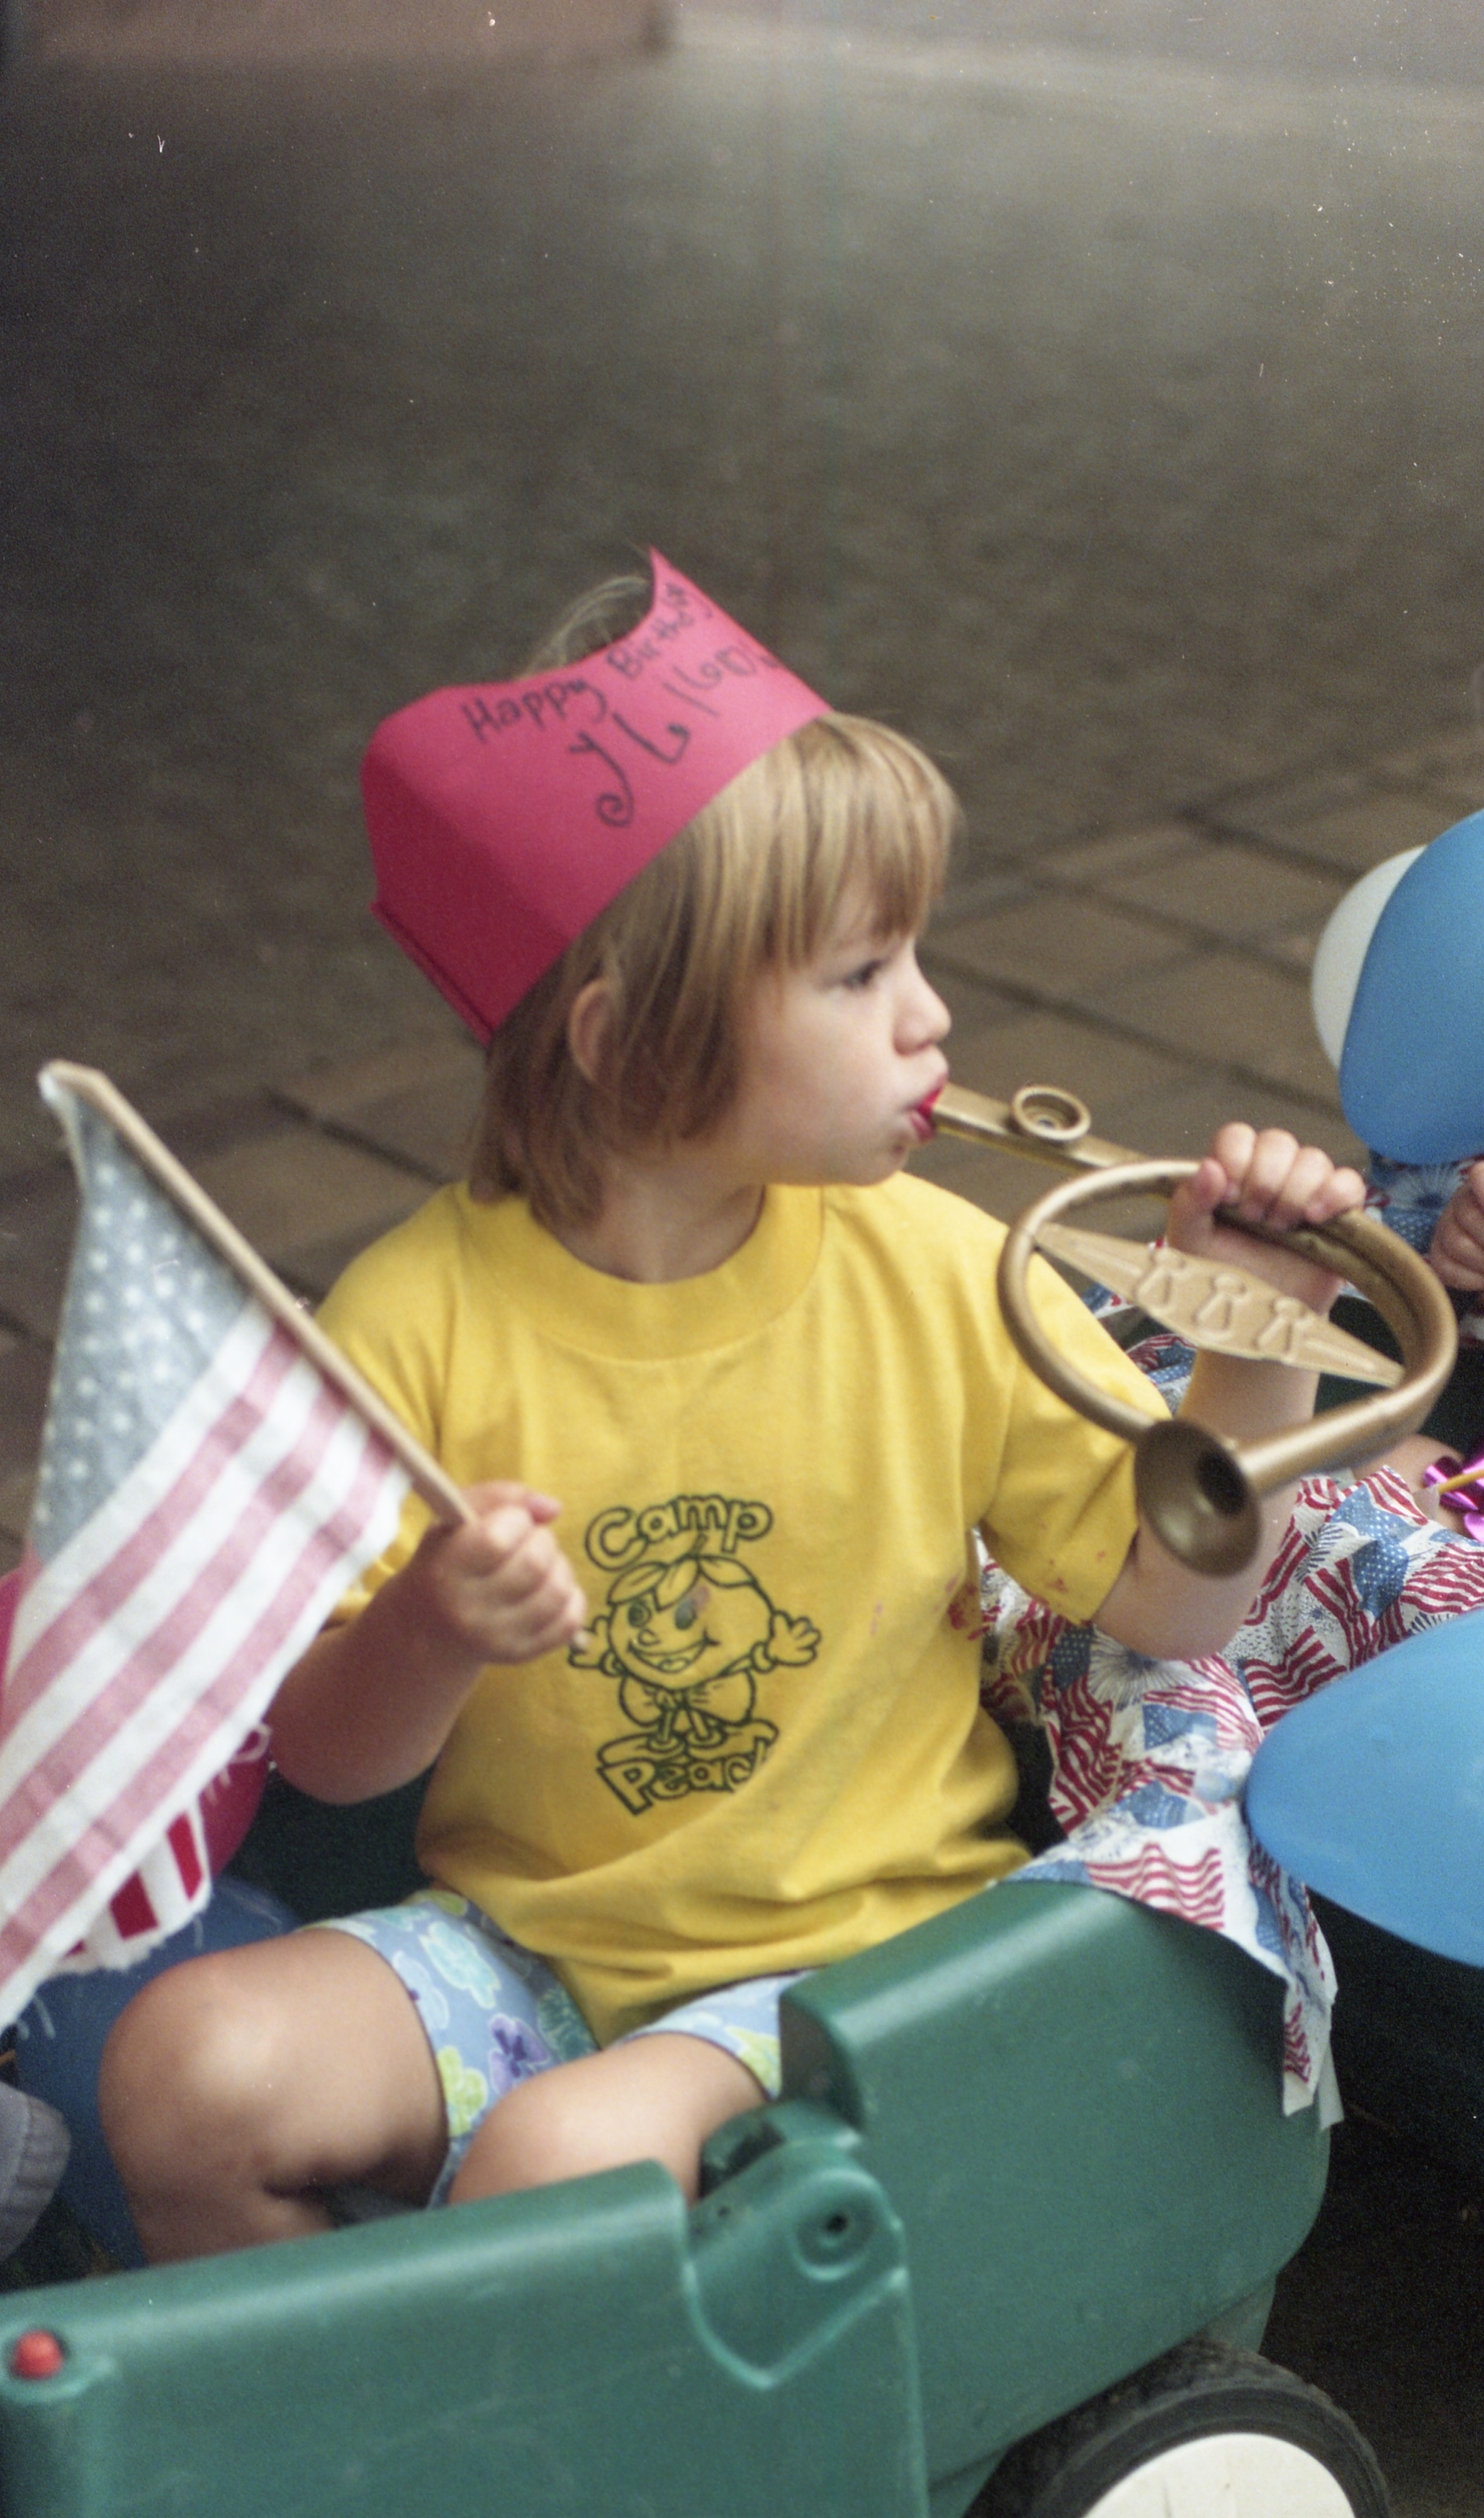 Lily Robins Plays A Horn In The Camp Peachy Pre-Independence Day Parade, July 2000 image